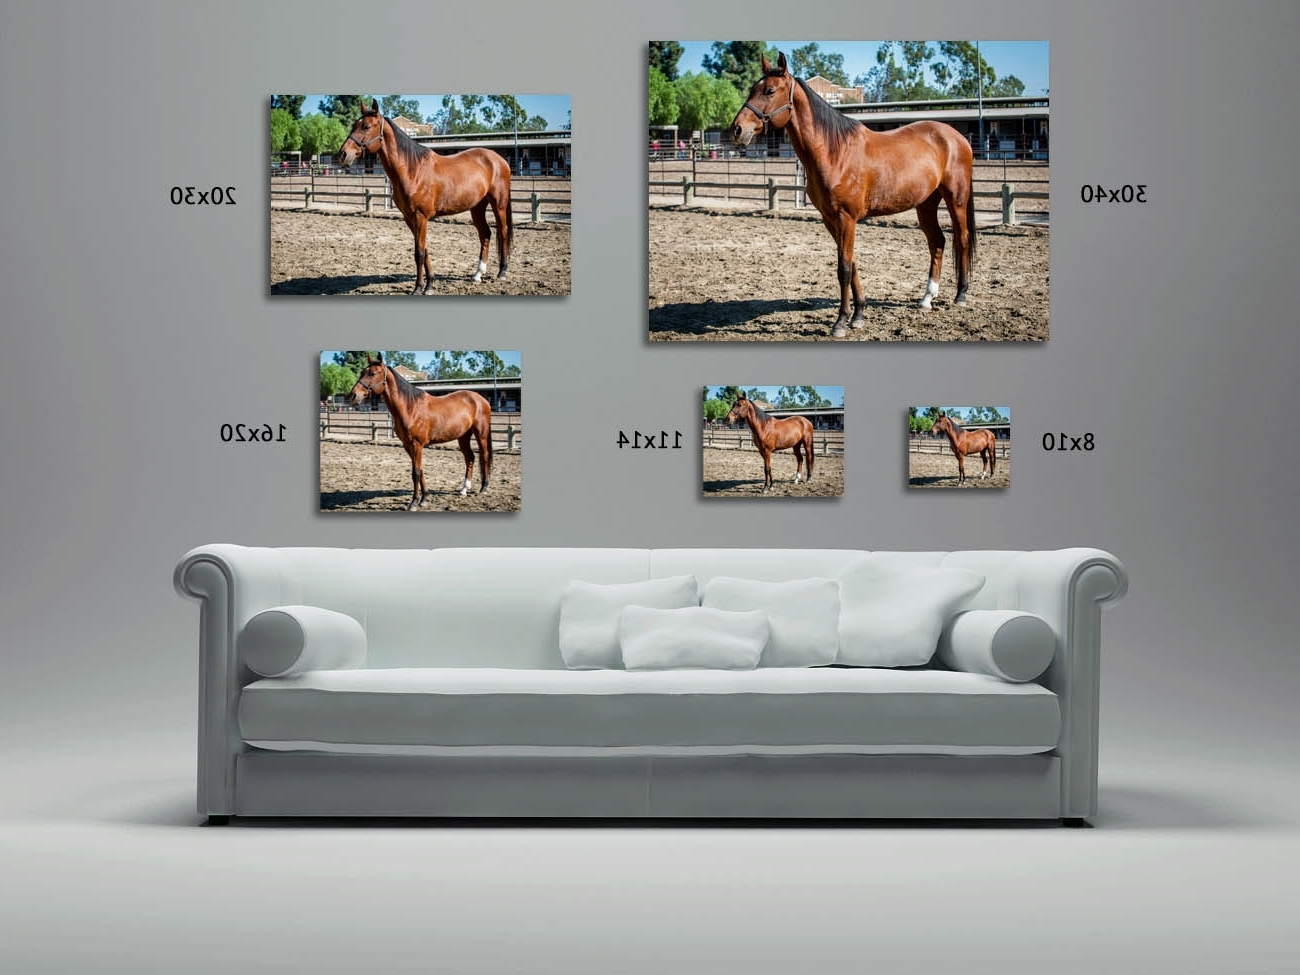 Well Known Sofa Size Wall Art 37 With Sofa Size Wall Art – Fjellkjeden Within Sofa Size Wall Art (View 2 of 15)